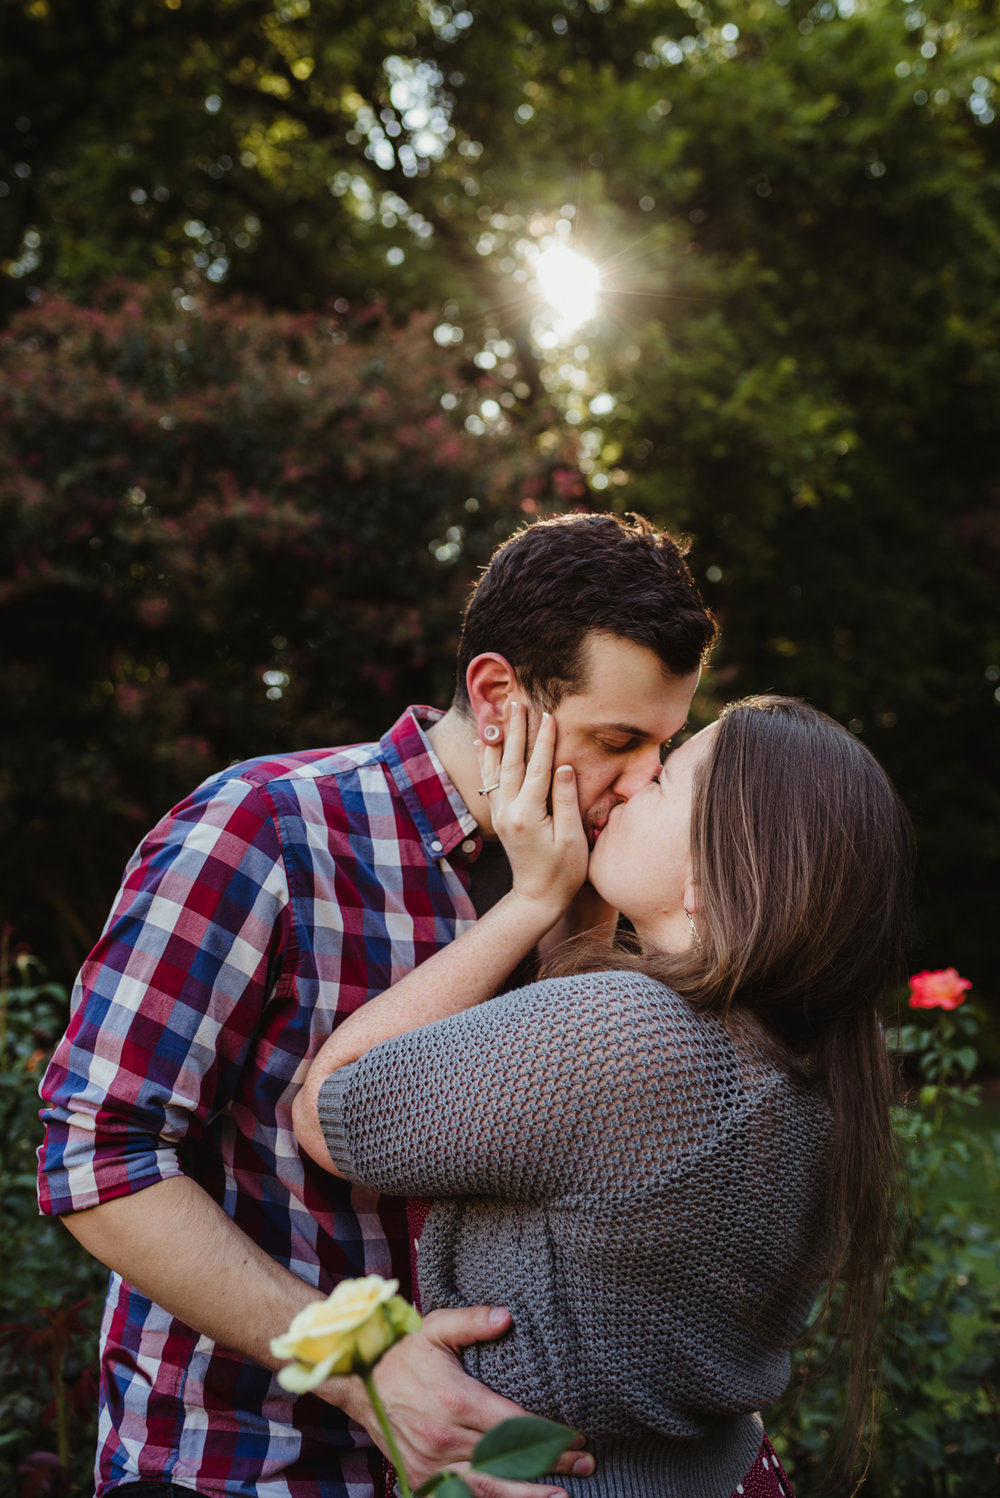 The bride and groom to be kiss under the sunset at the Raleigh Rose Garden during their engagement session with Rose Trail Images.